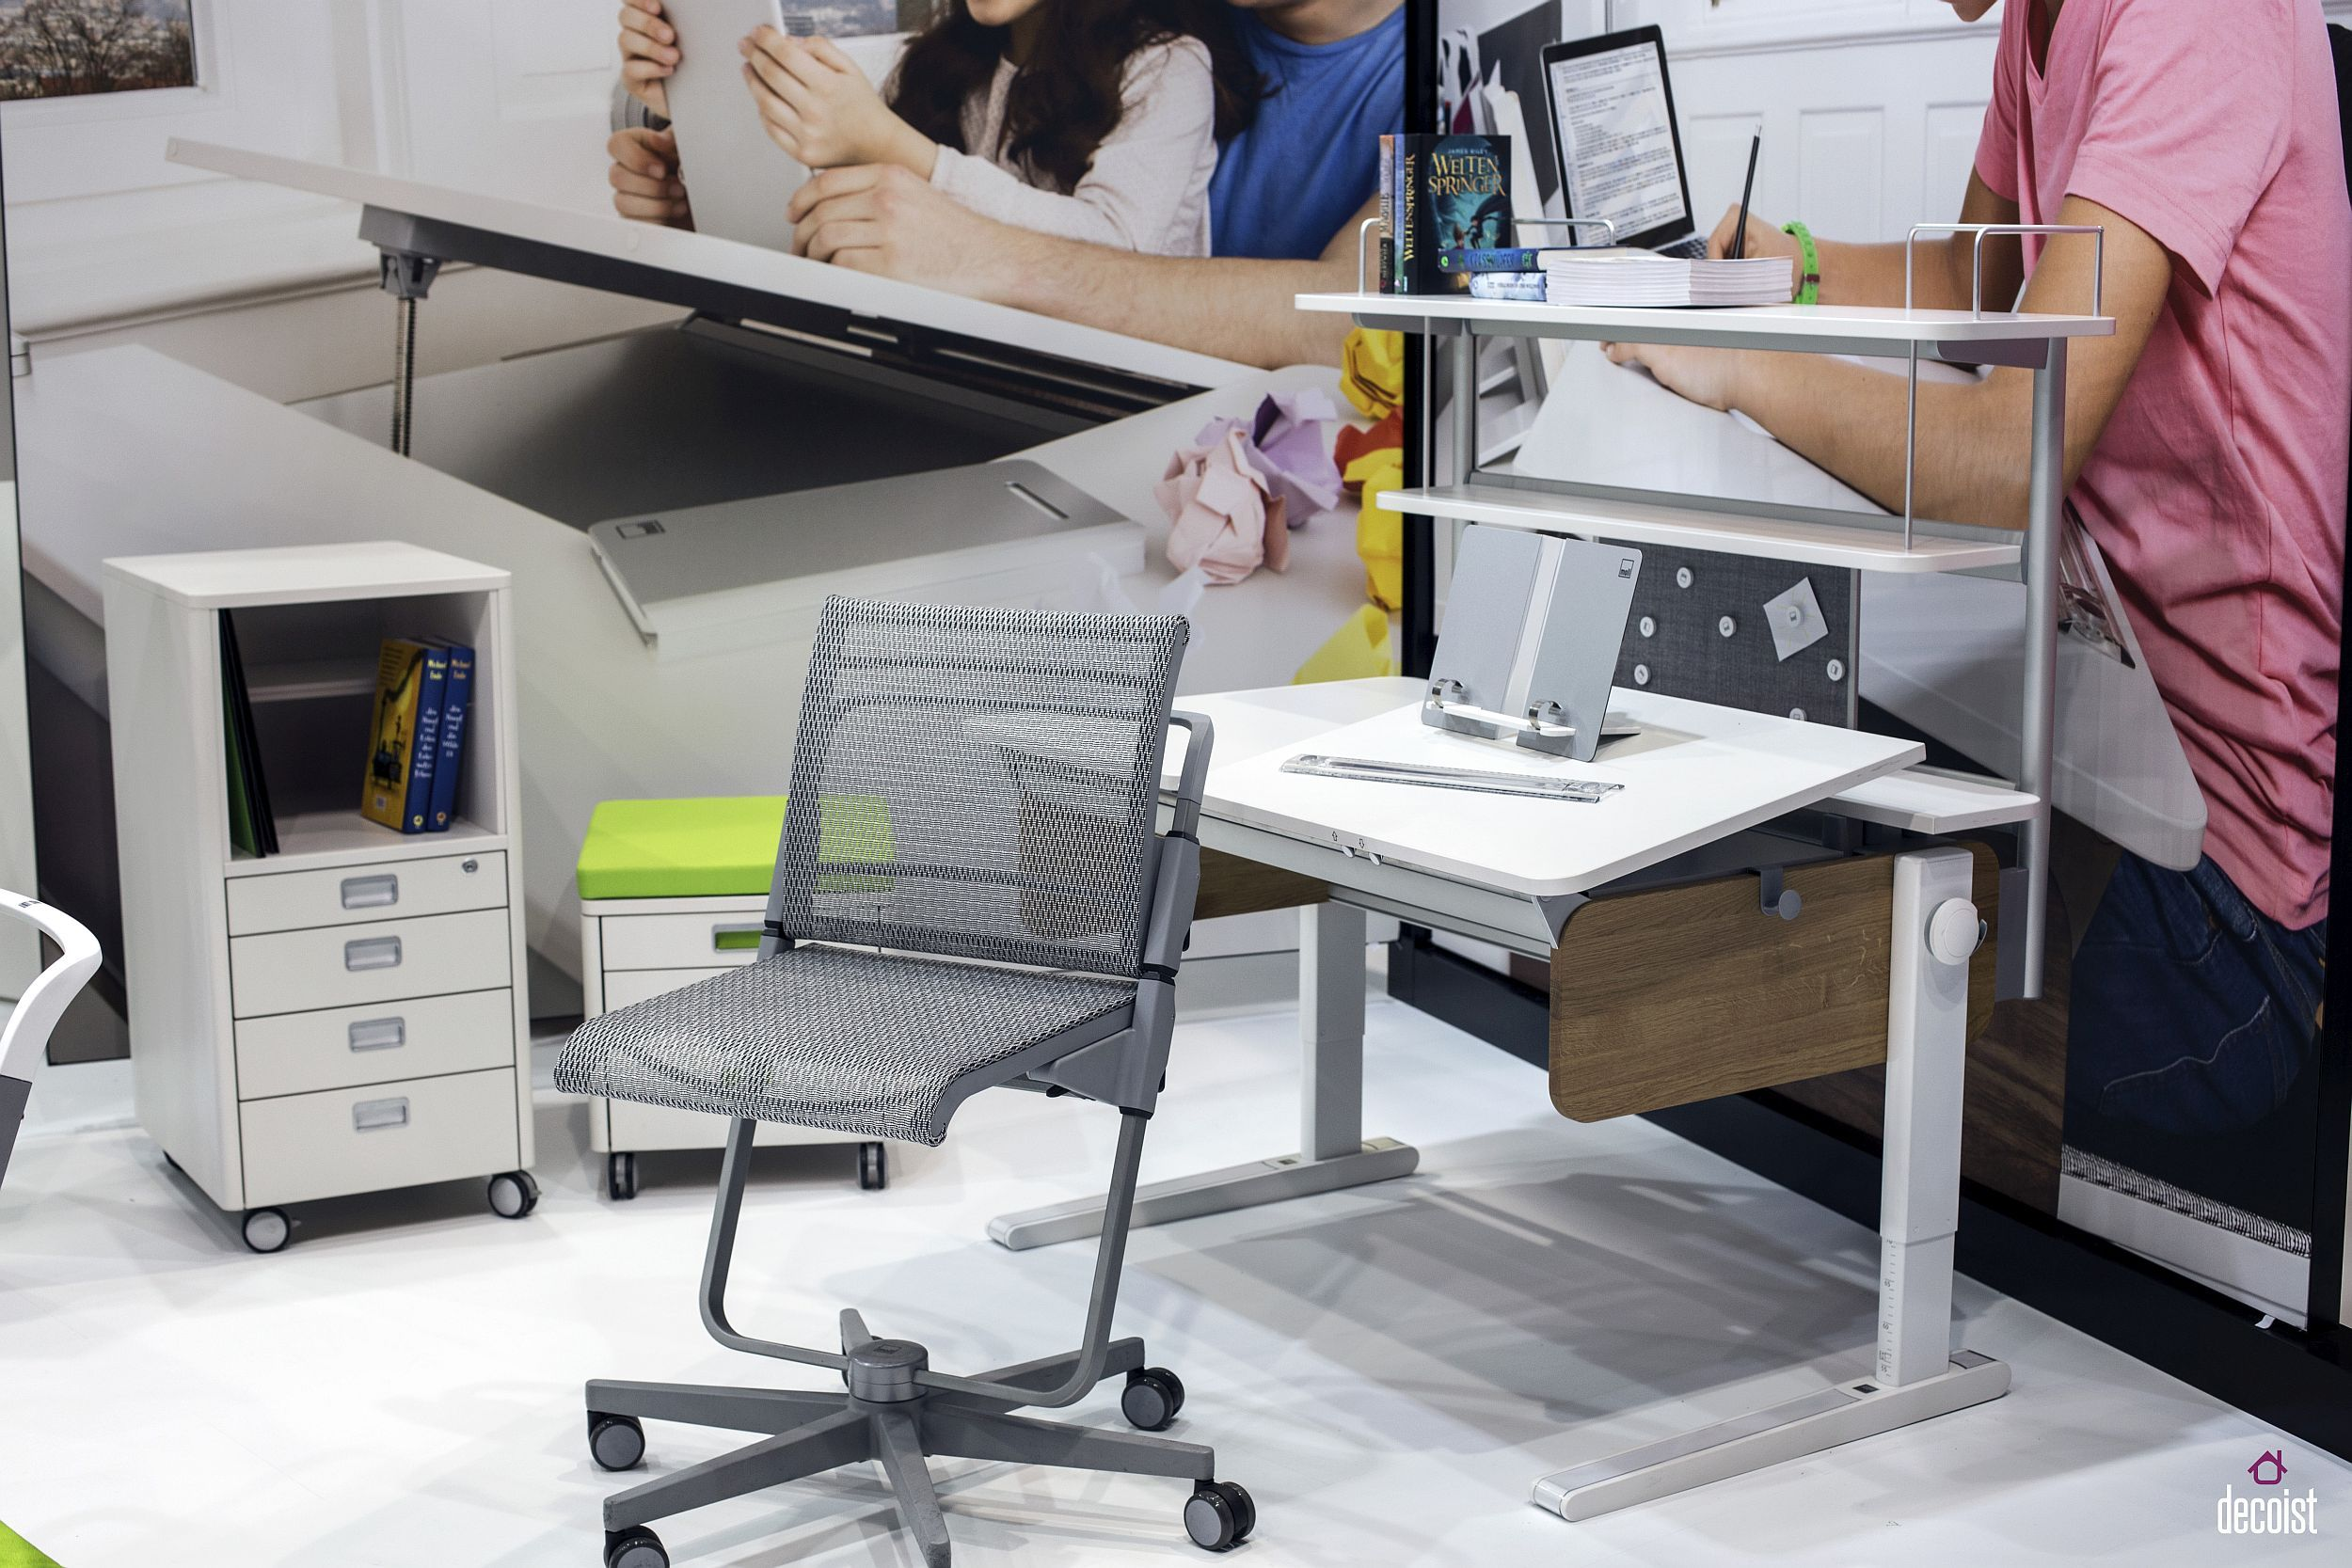 fabulous finds 15 work desks for a trendy home office hauses rh pinterest ch